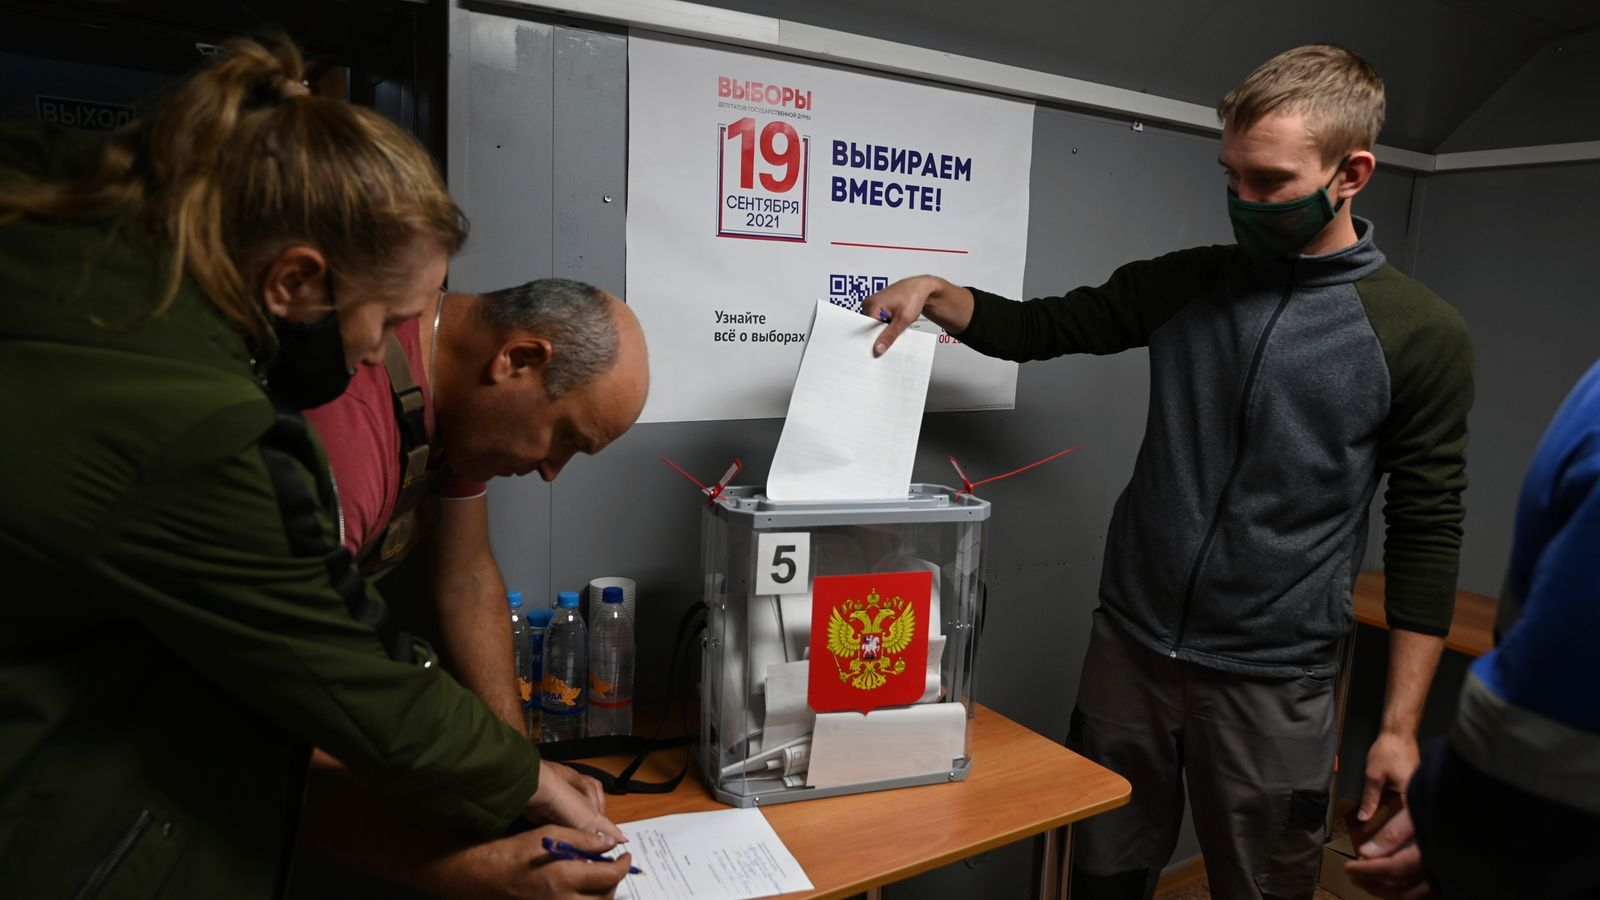 Putin has a cast-iron grip on power – so why is he working so hard to control Russia's election?